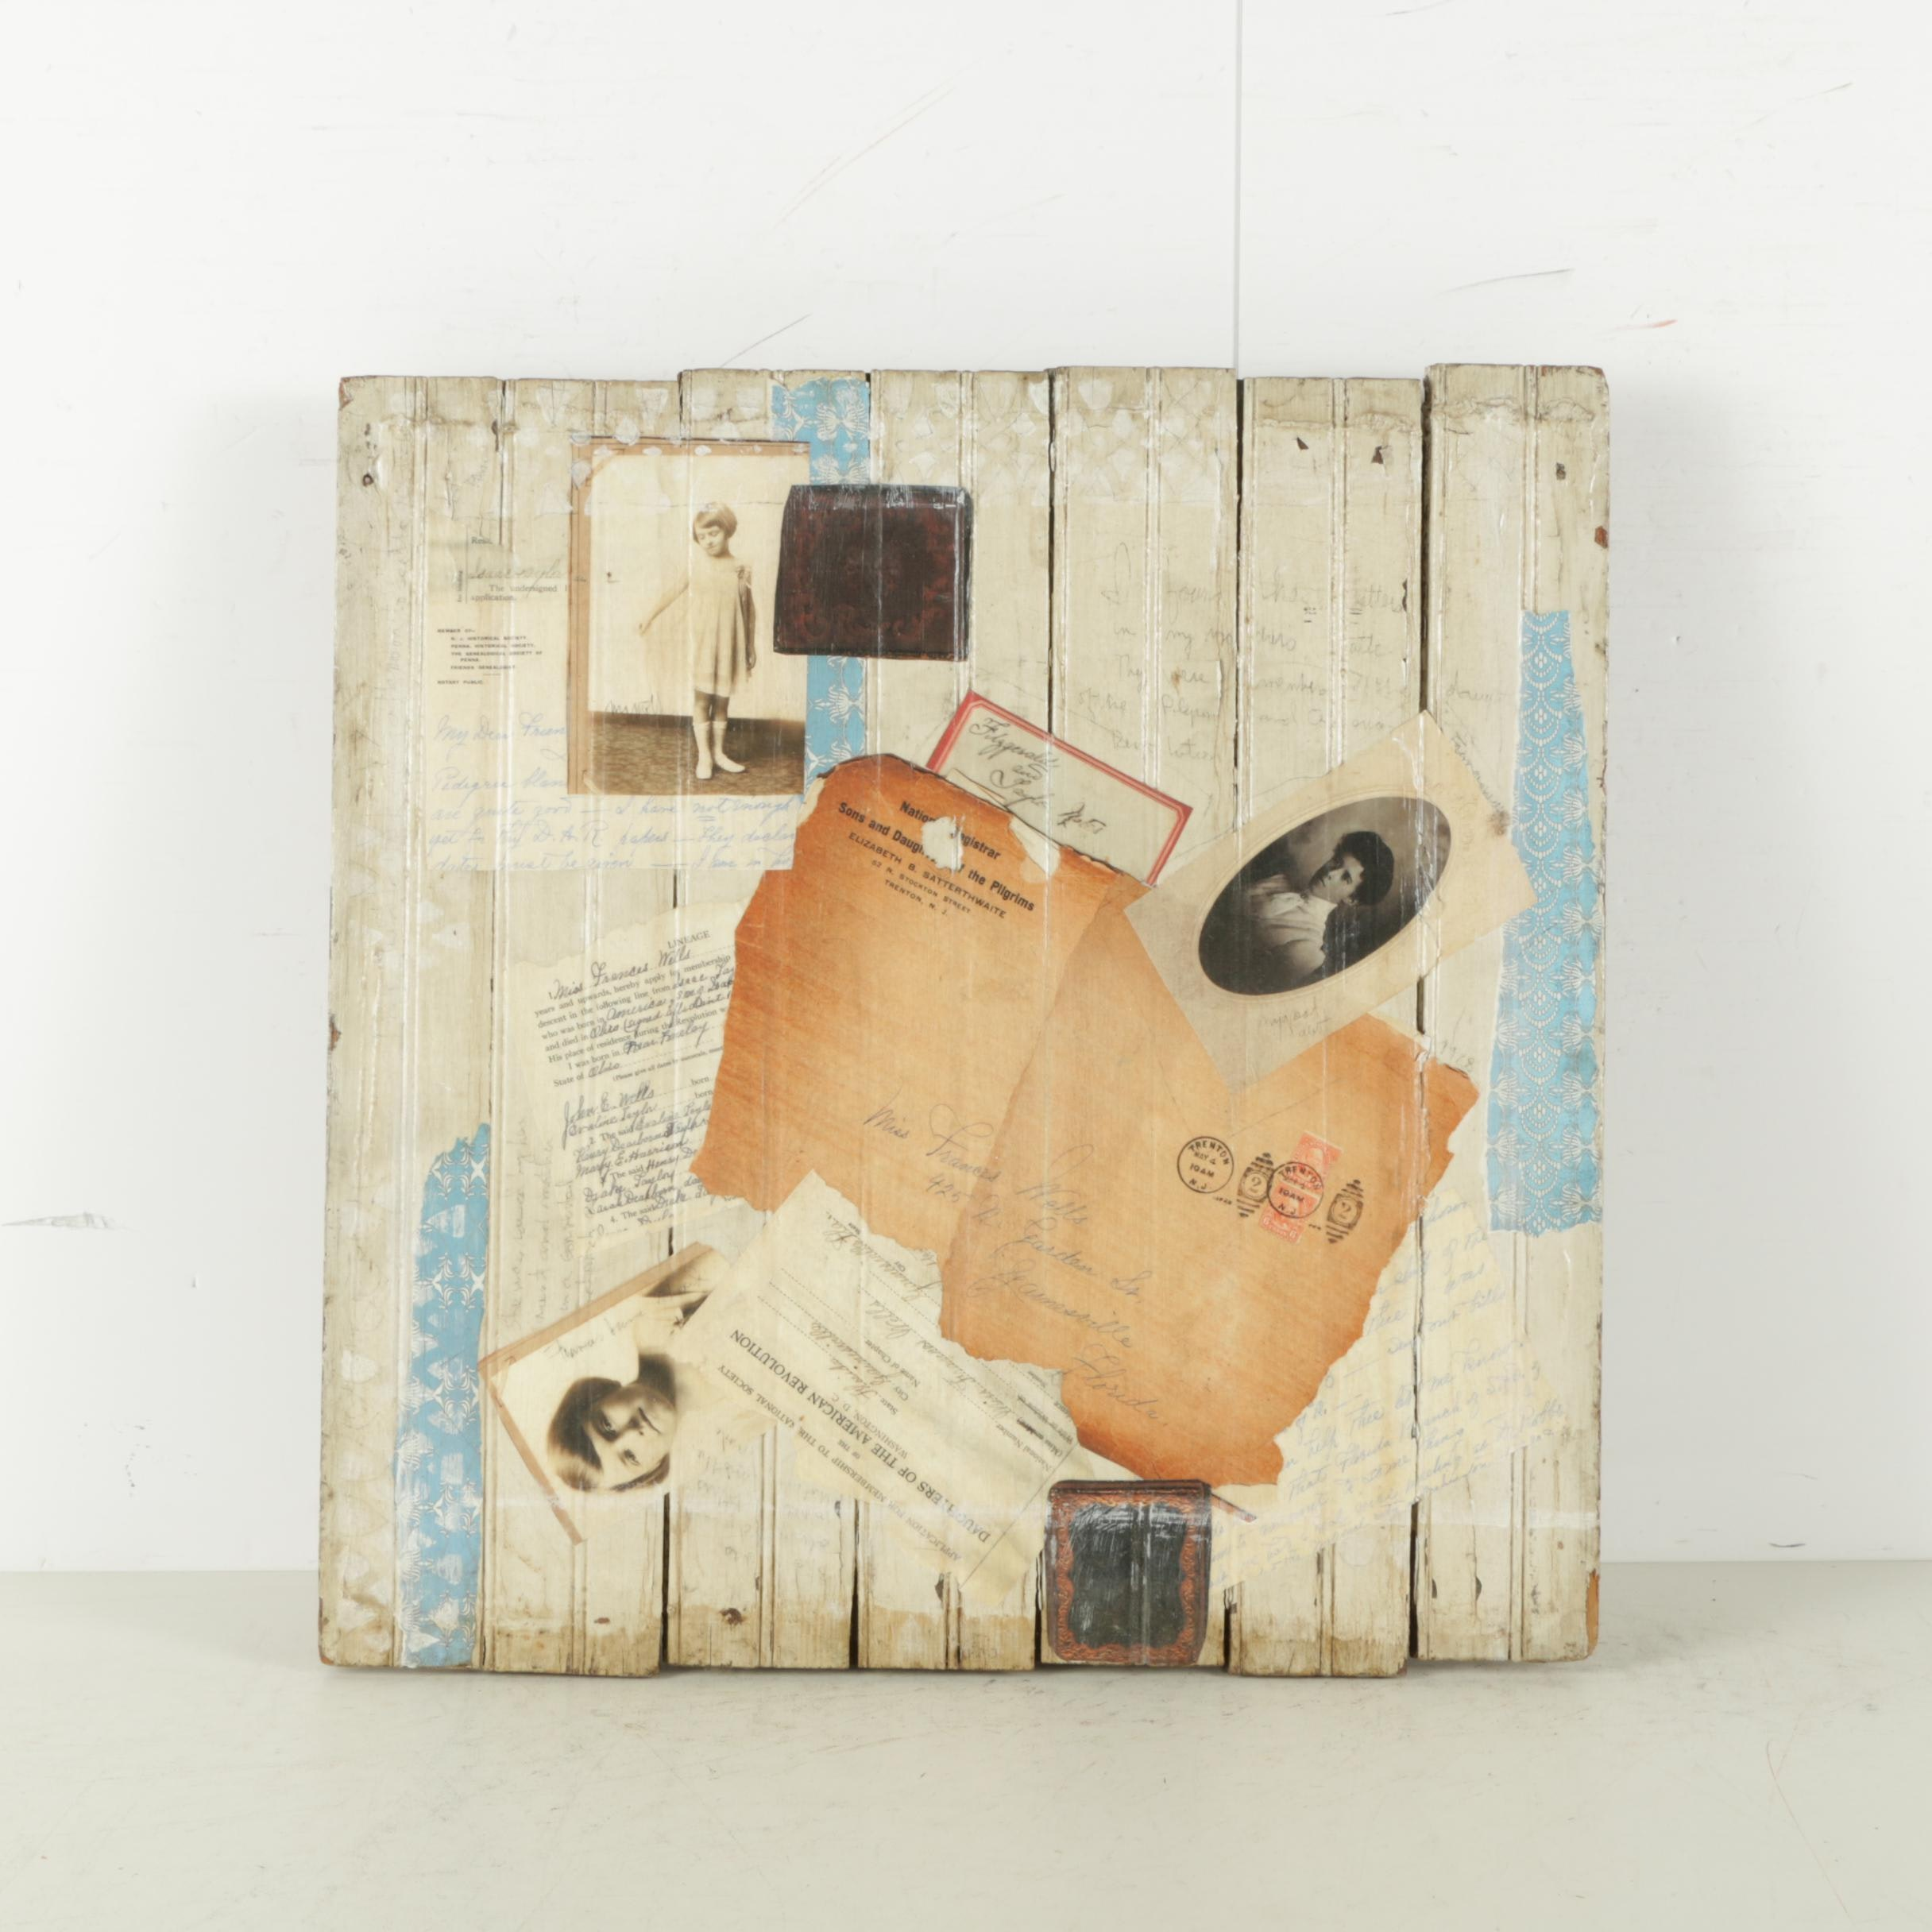 Mixed Media Collage Attributed to David Widmer